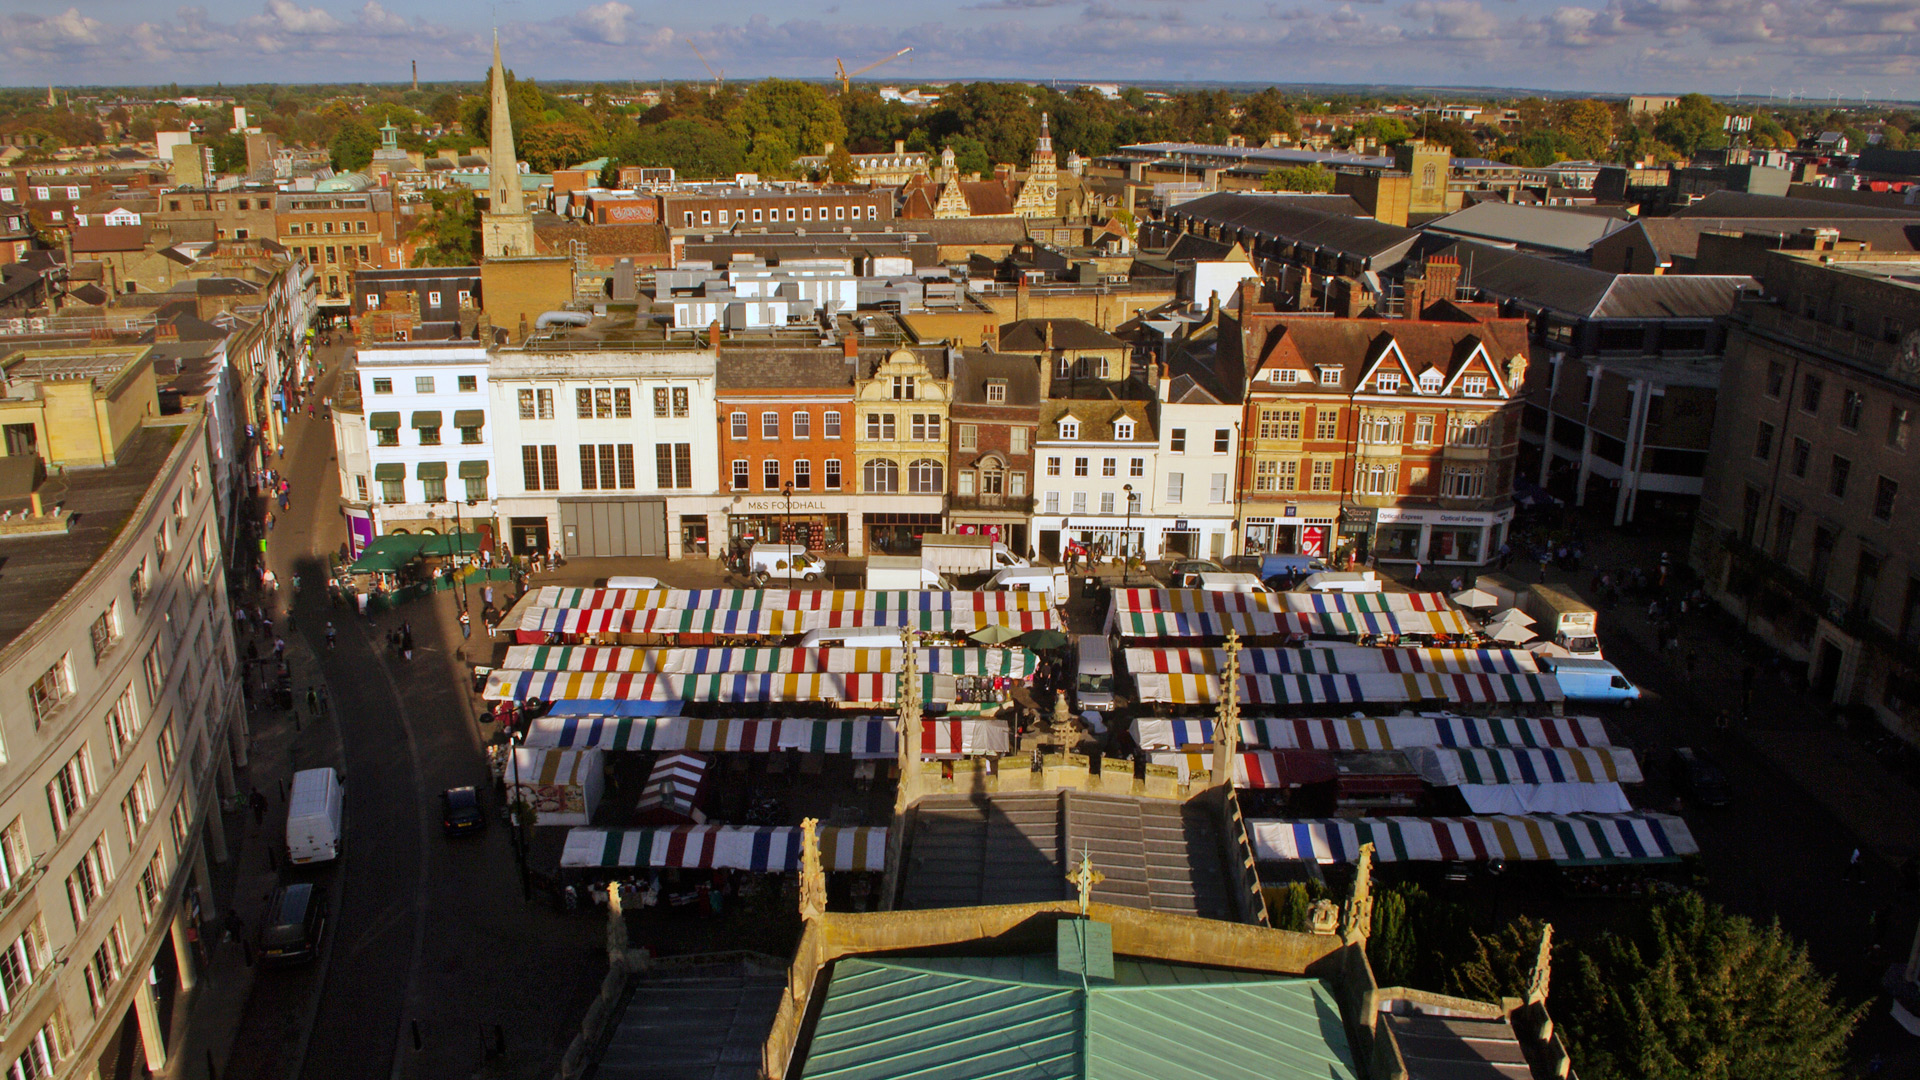 cambridge Cambridge market from roof Great St Marys church